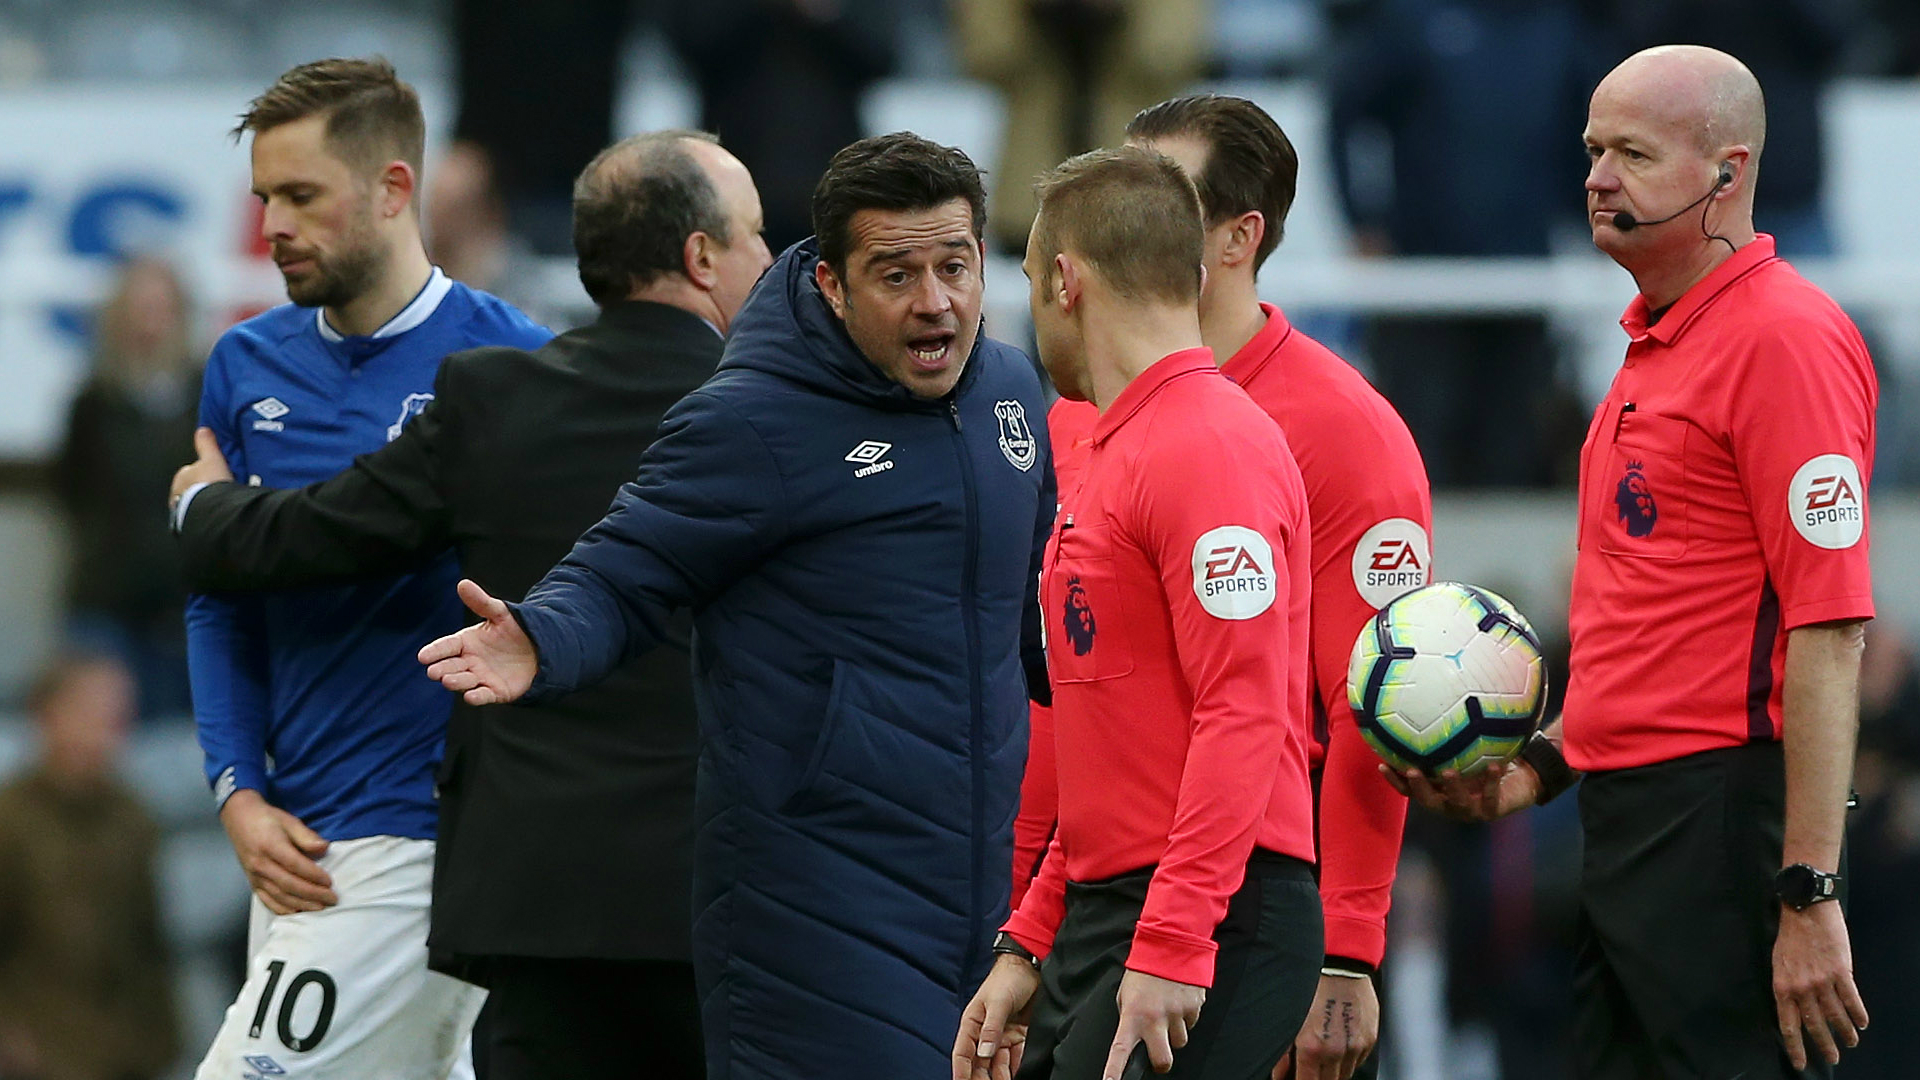 Silva charged with improper conduct after confronting referee